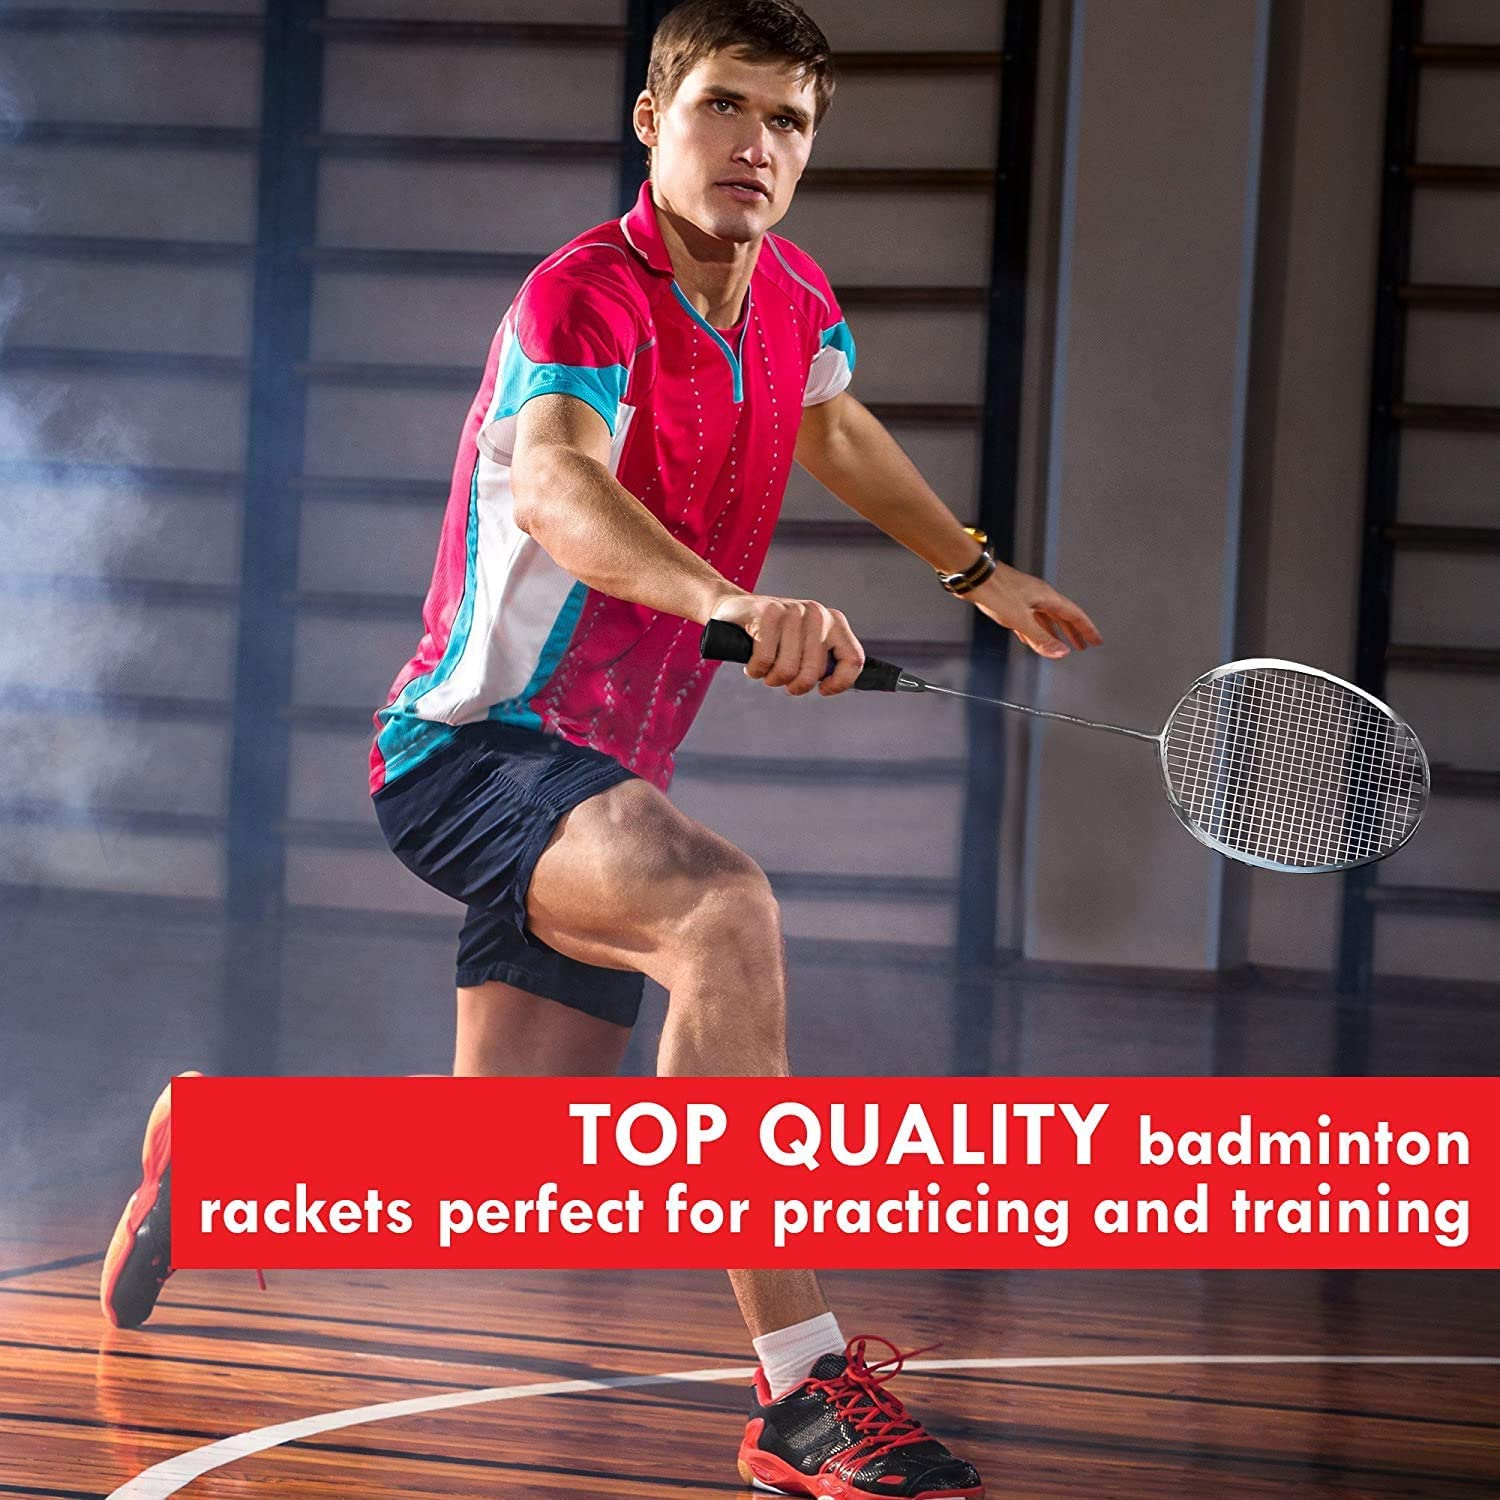 Trained Premium Quality Set of Badminton Rackets, Pair of 2 Rackets, Lightweight & Sturdy, with 5 LED SHUTTLECOCKS, for Professional & Beginner Players Adults and Children, Carrying Bag Included : Sports & Outdoors